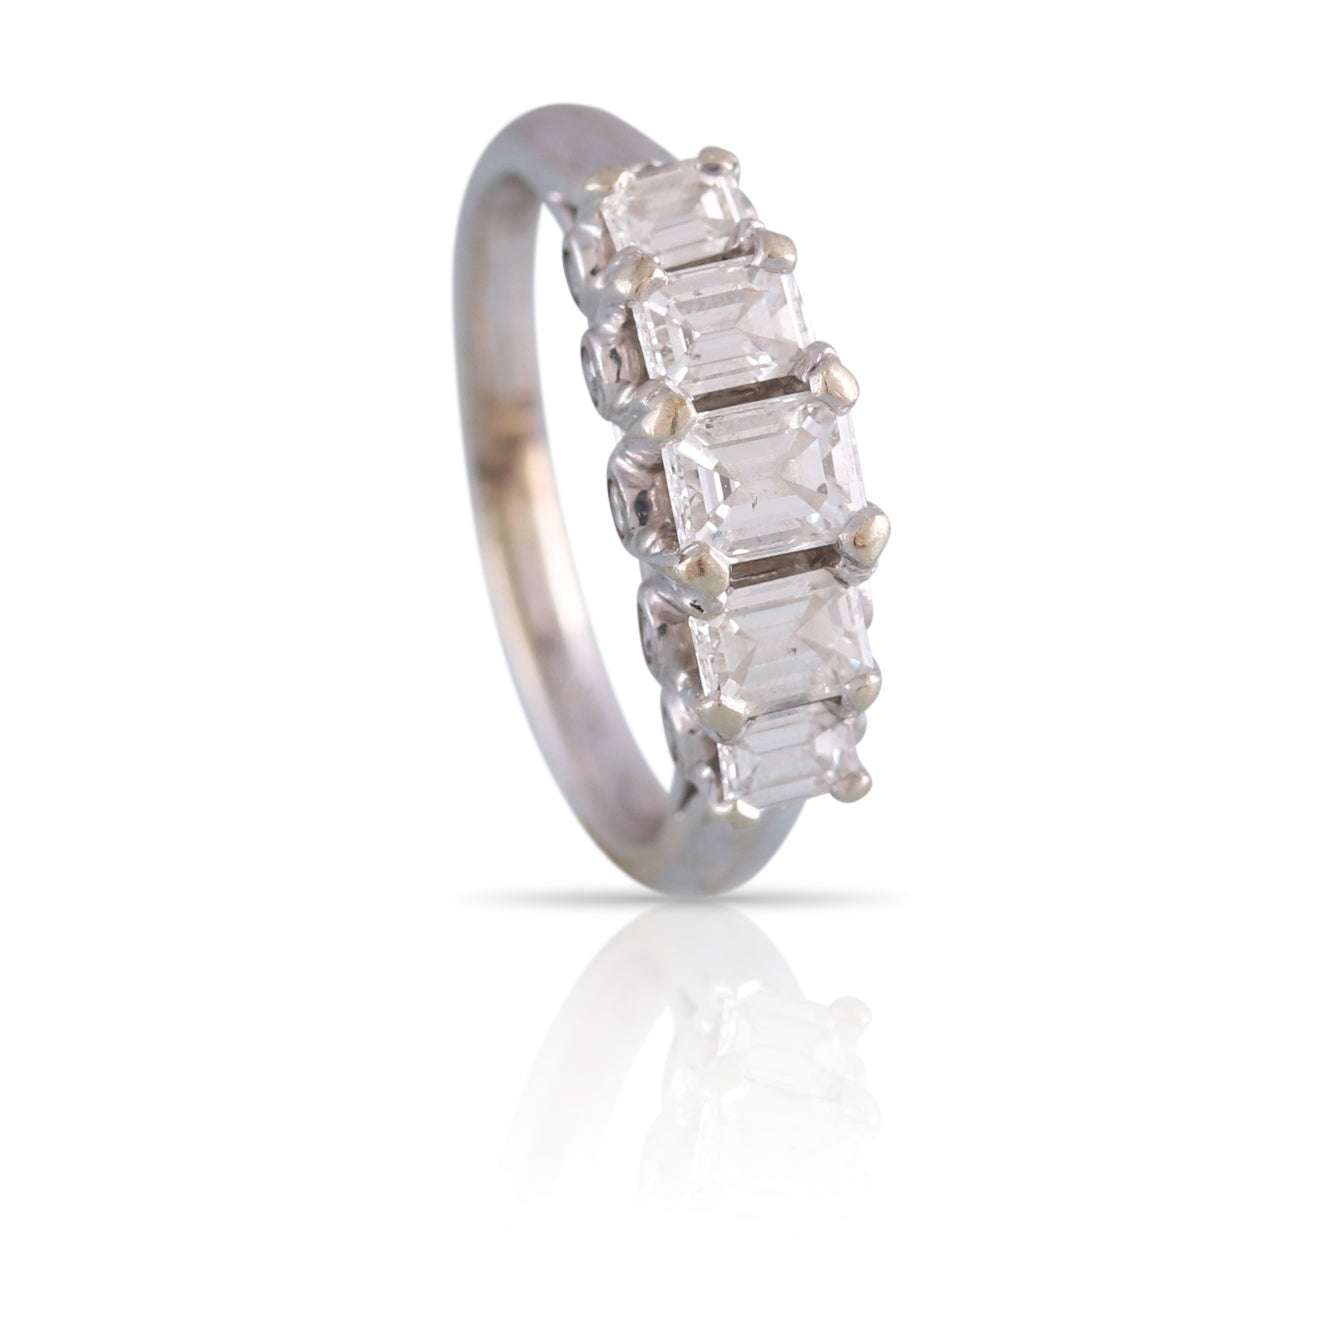 Emerald Cut Diamond Five-Stone Ring | The Apollo